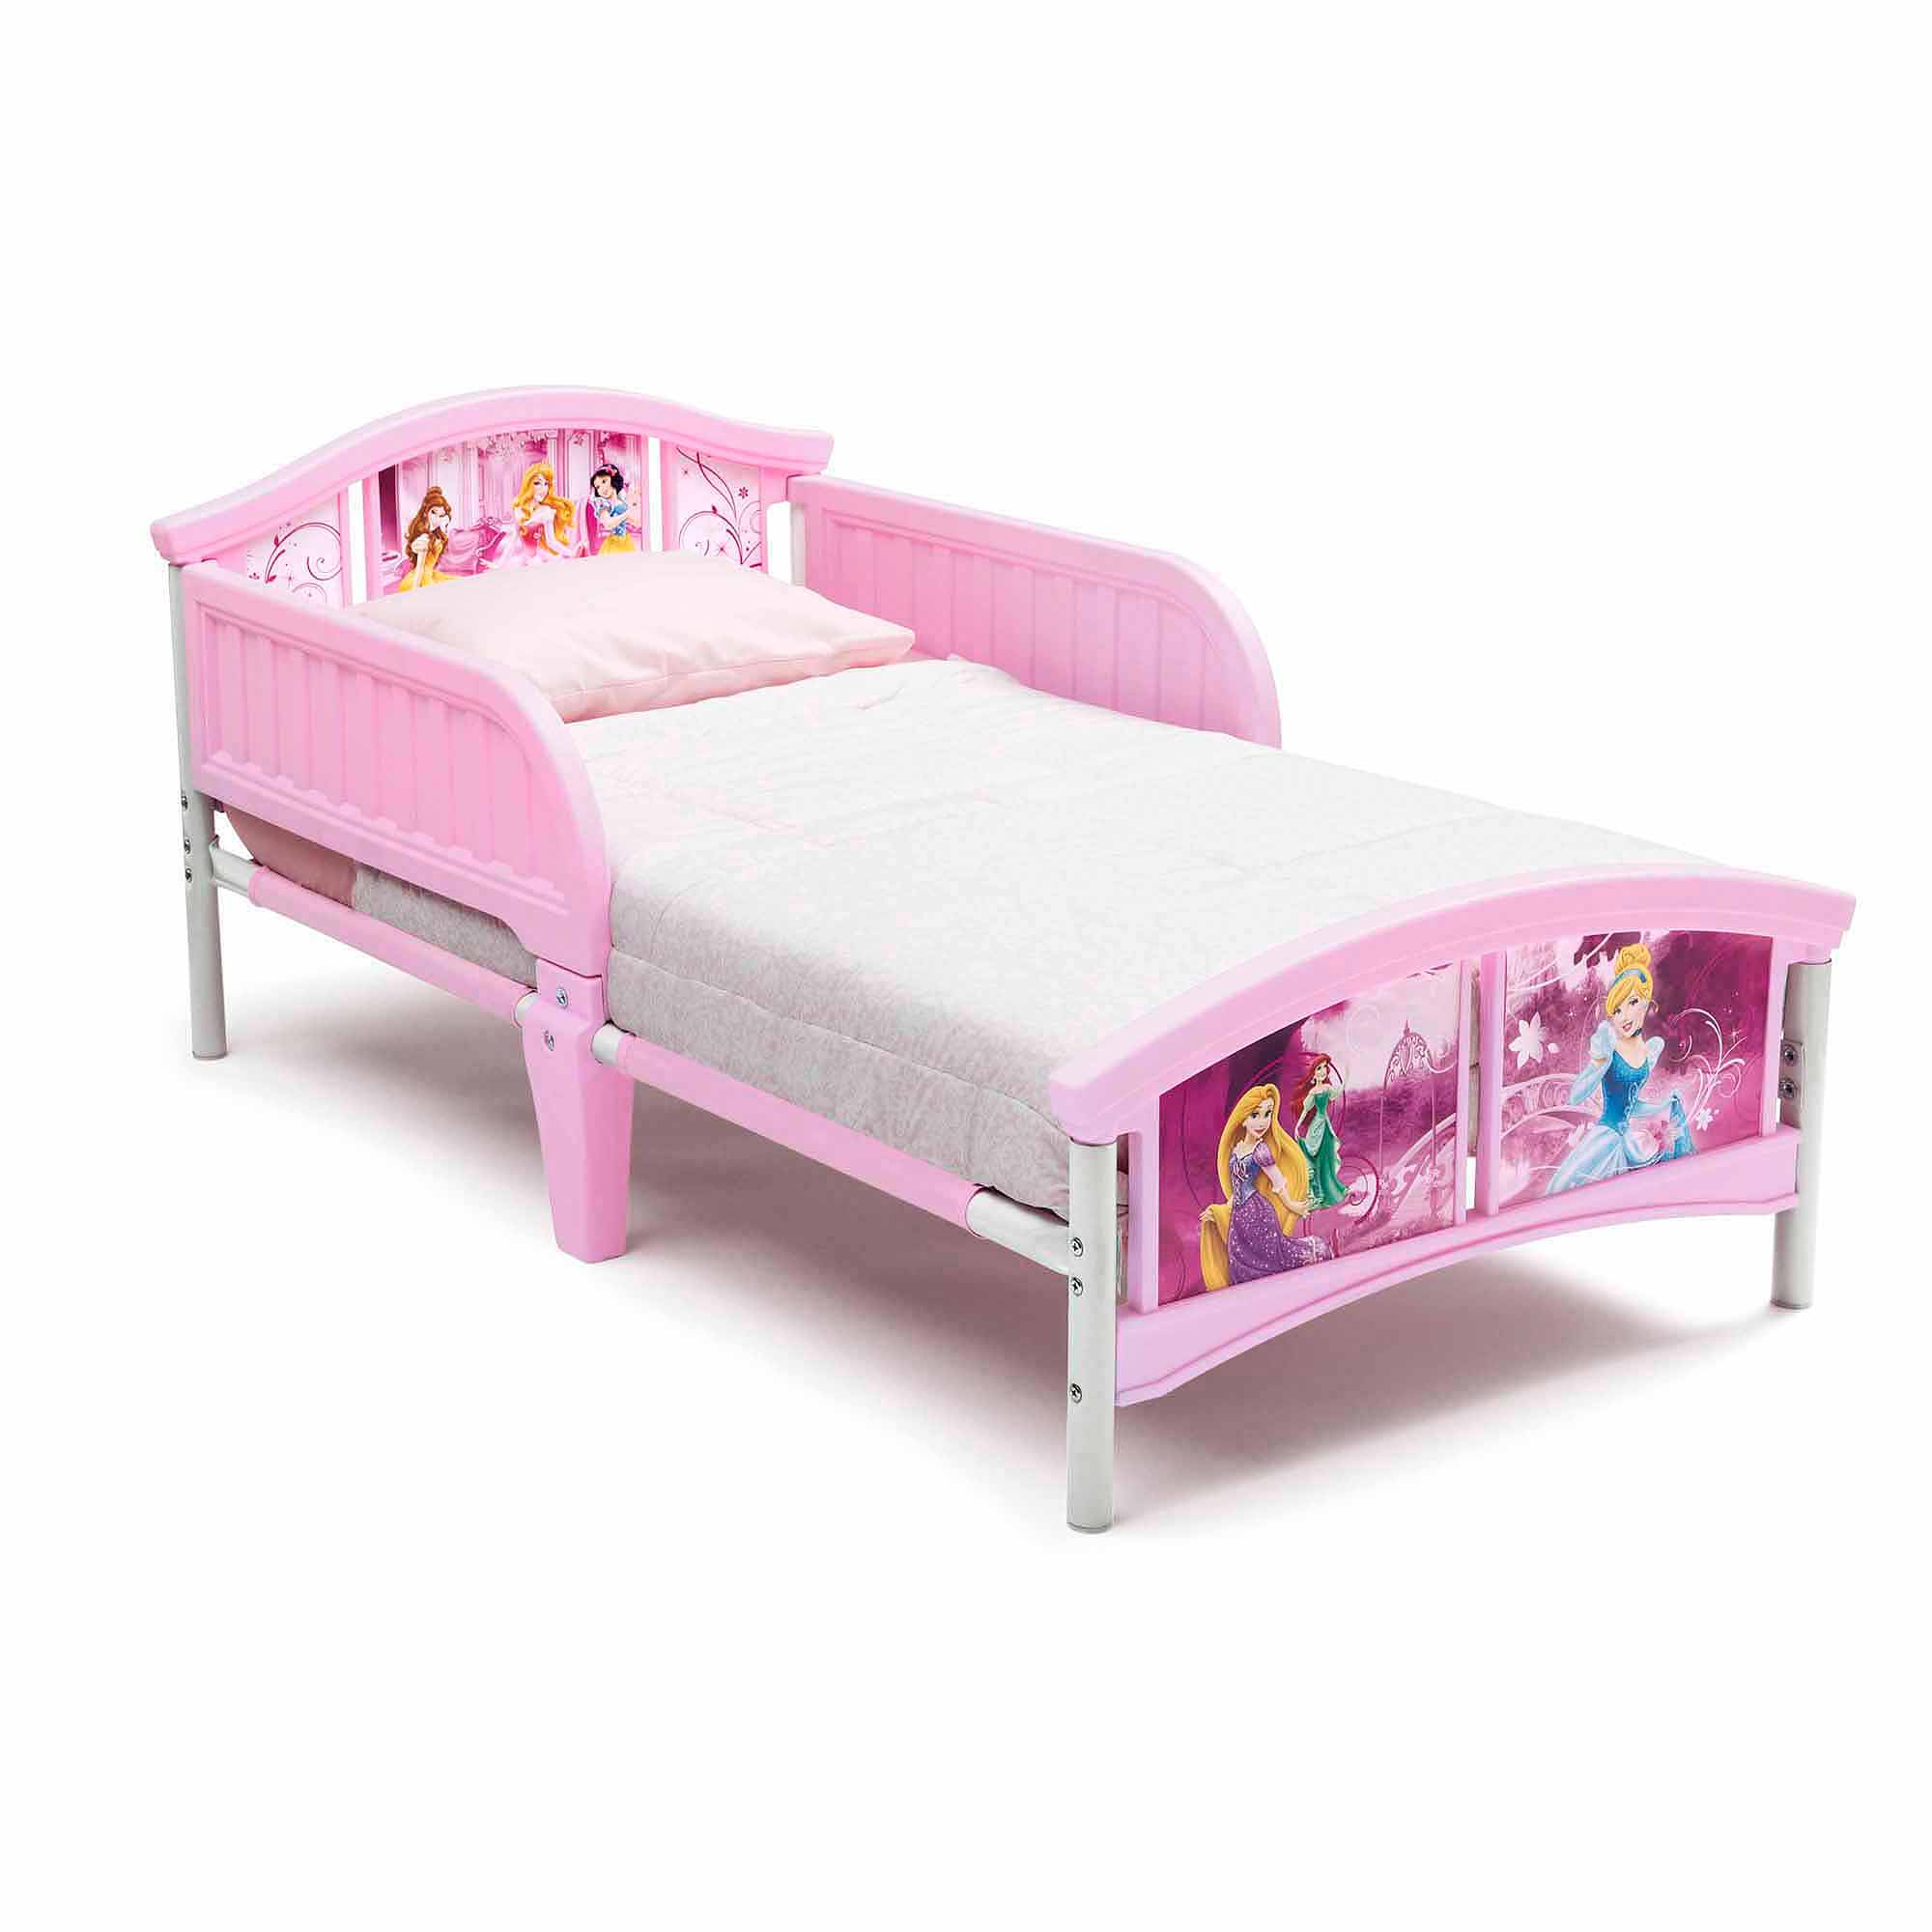 Disney Princess Plastic Toddler Bed